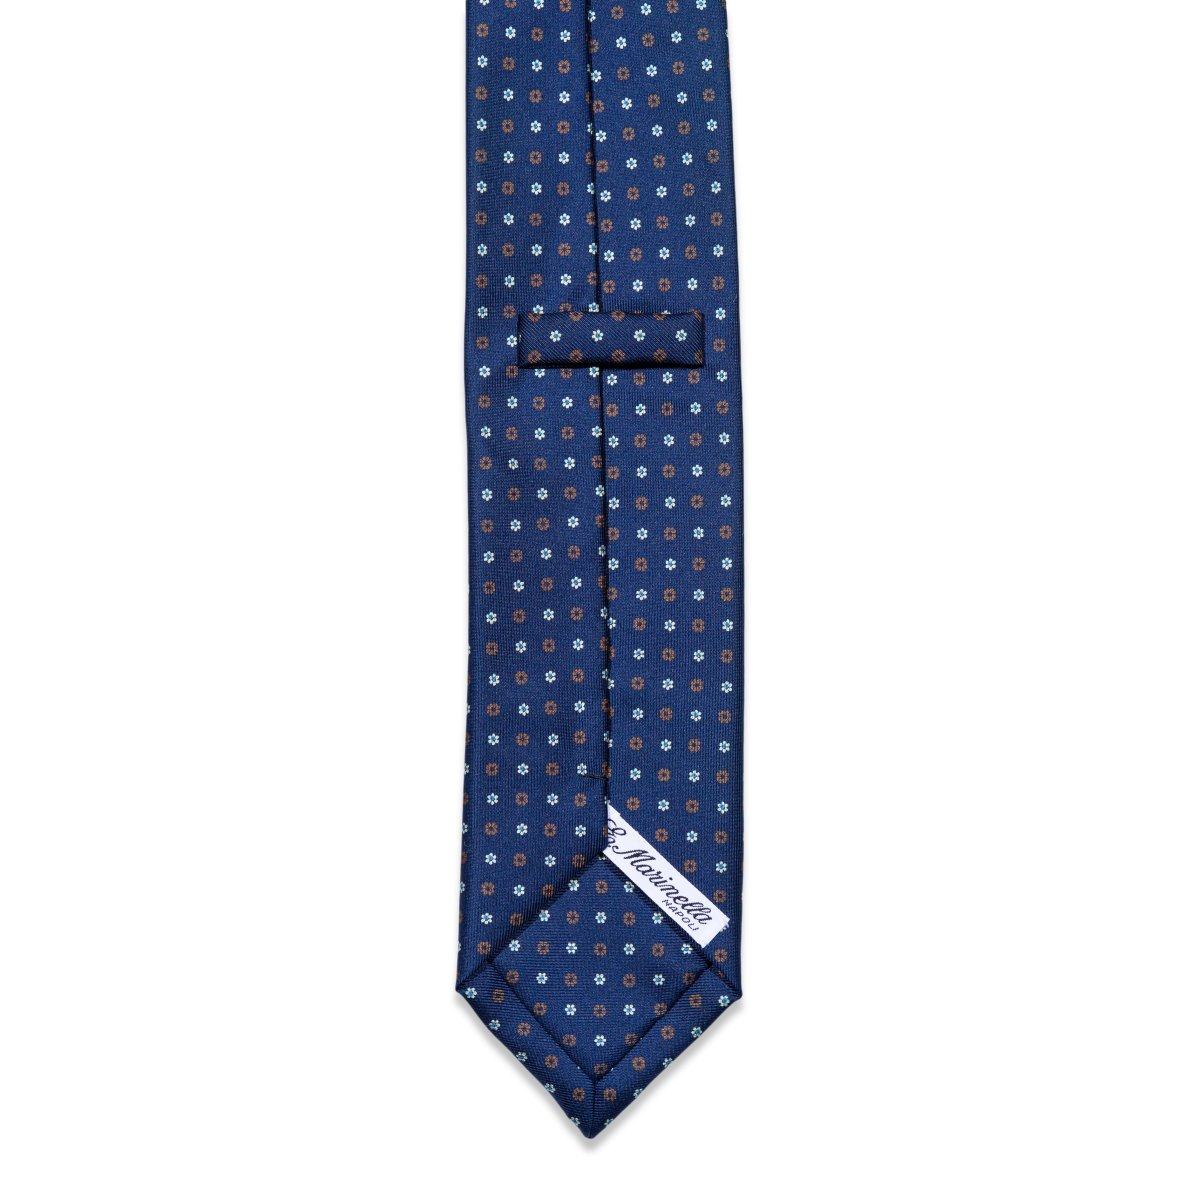 E.Marinella - Das, Blue With Brown Flowers, Dassen | NEW TAILOR Webshop